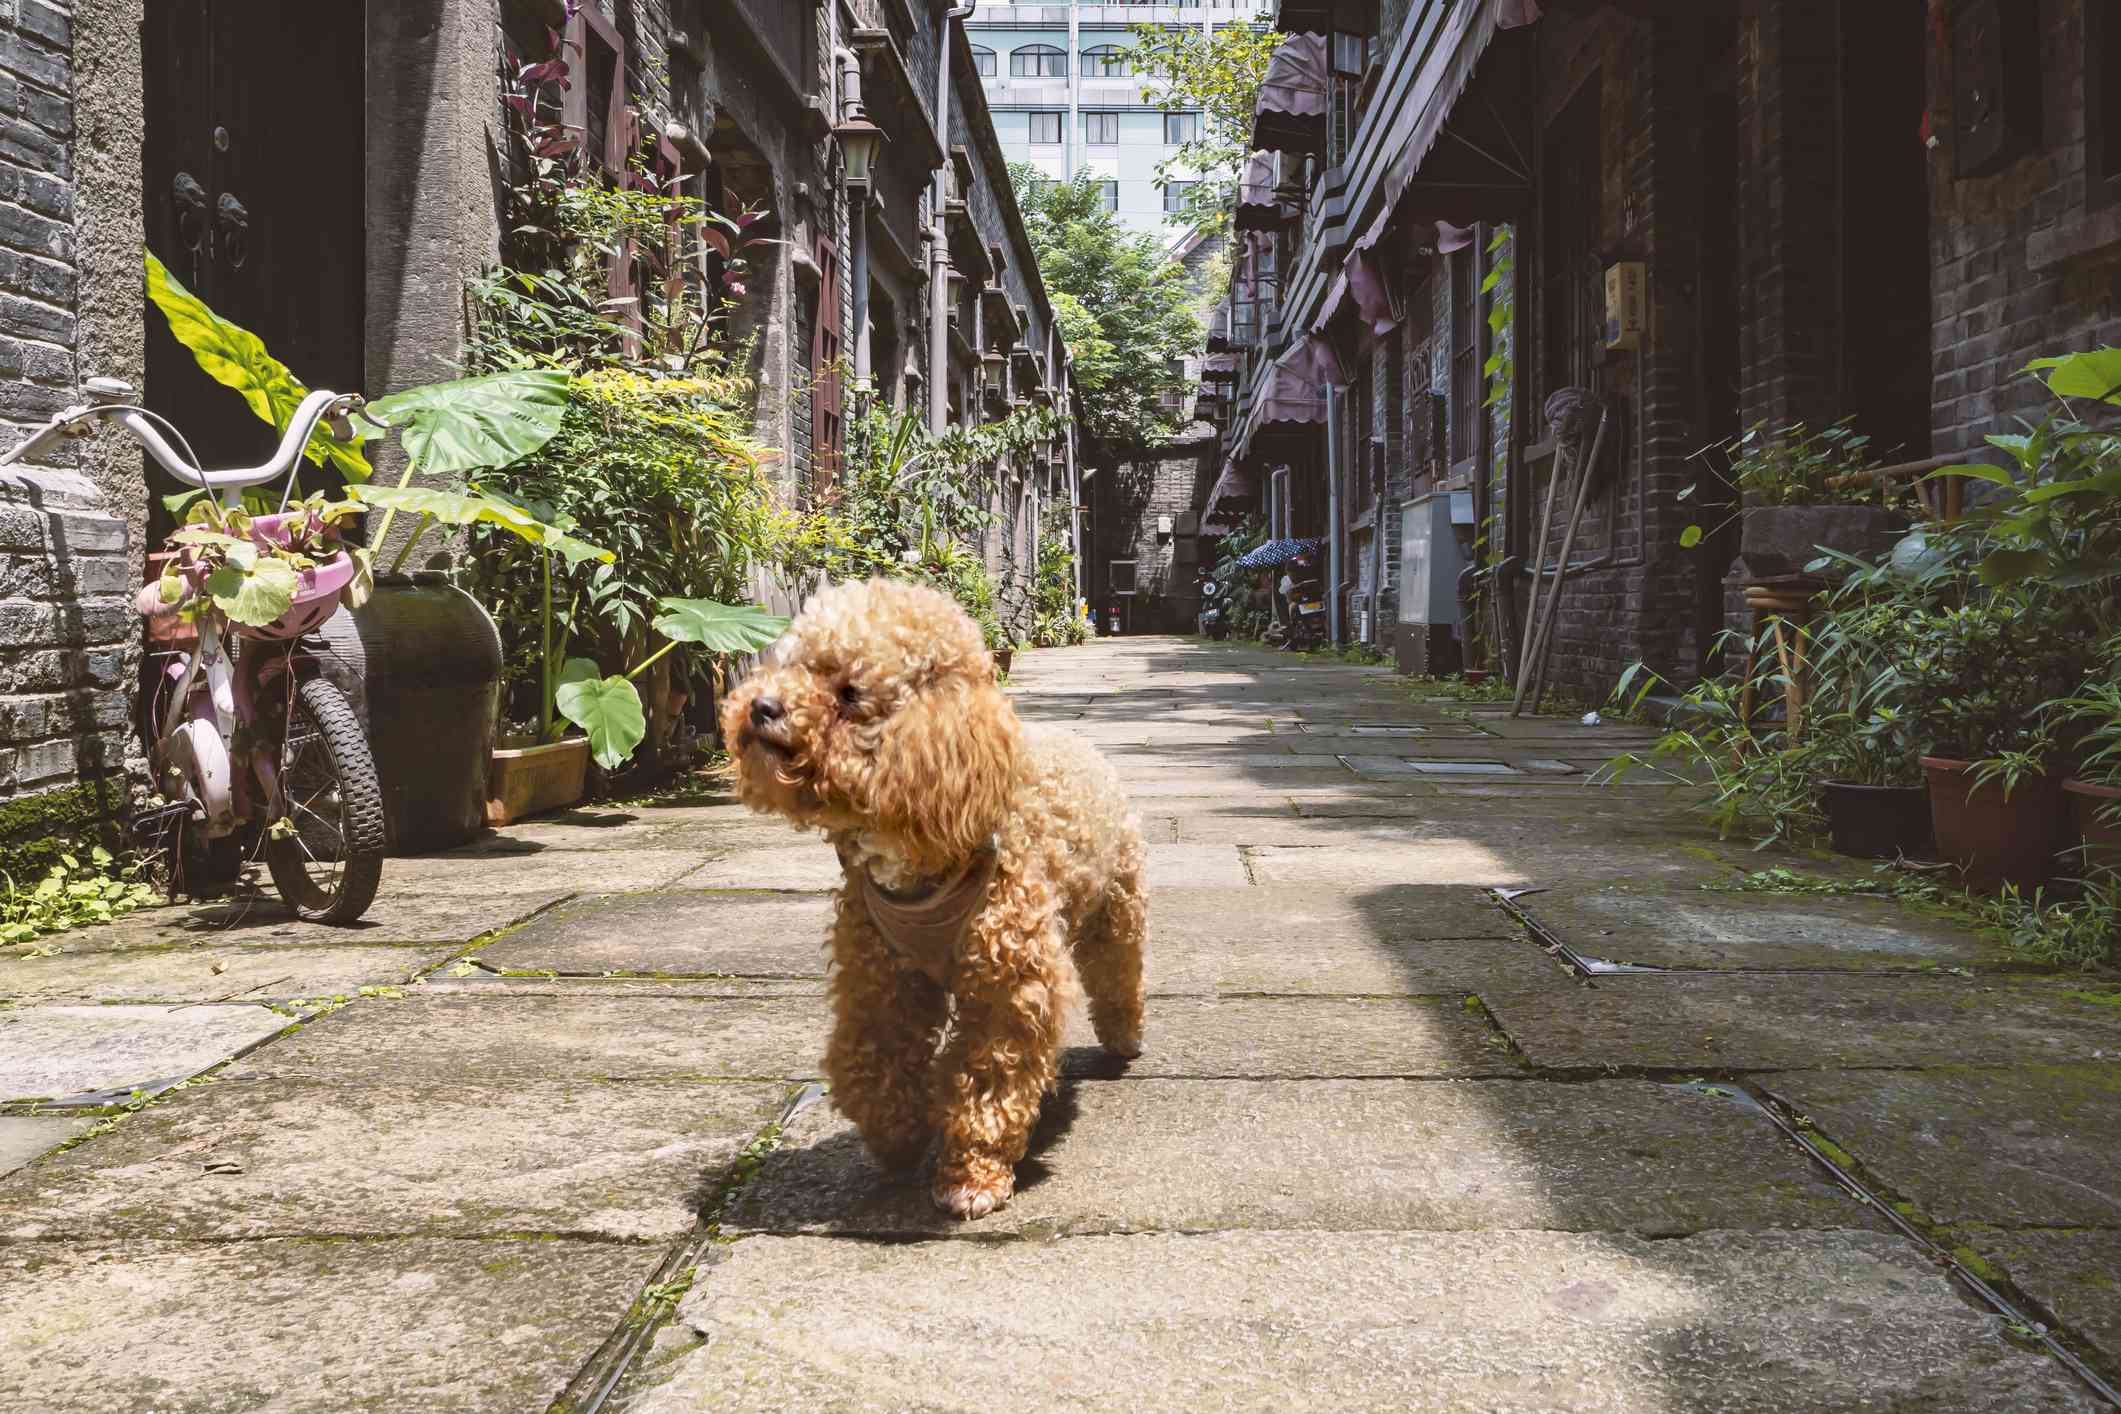 A golden dog with curly hair walking through an alley with plants.